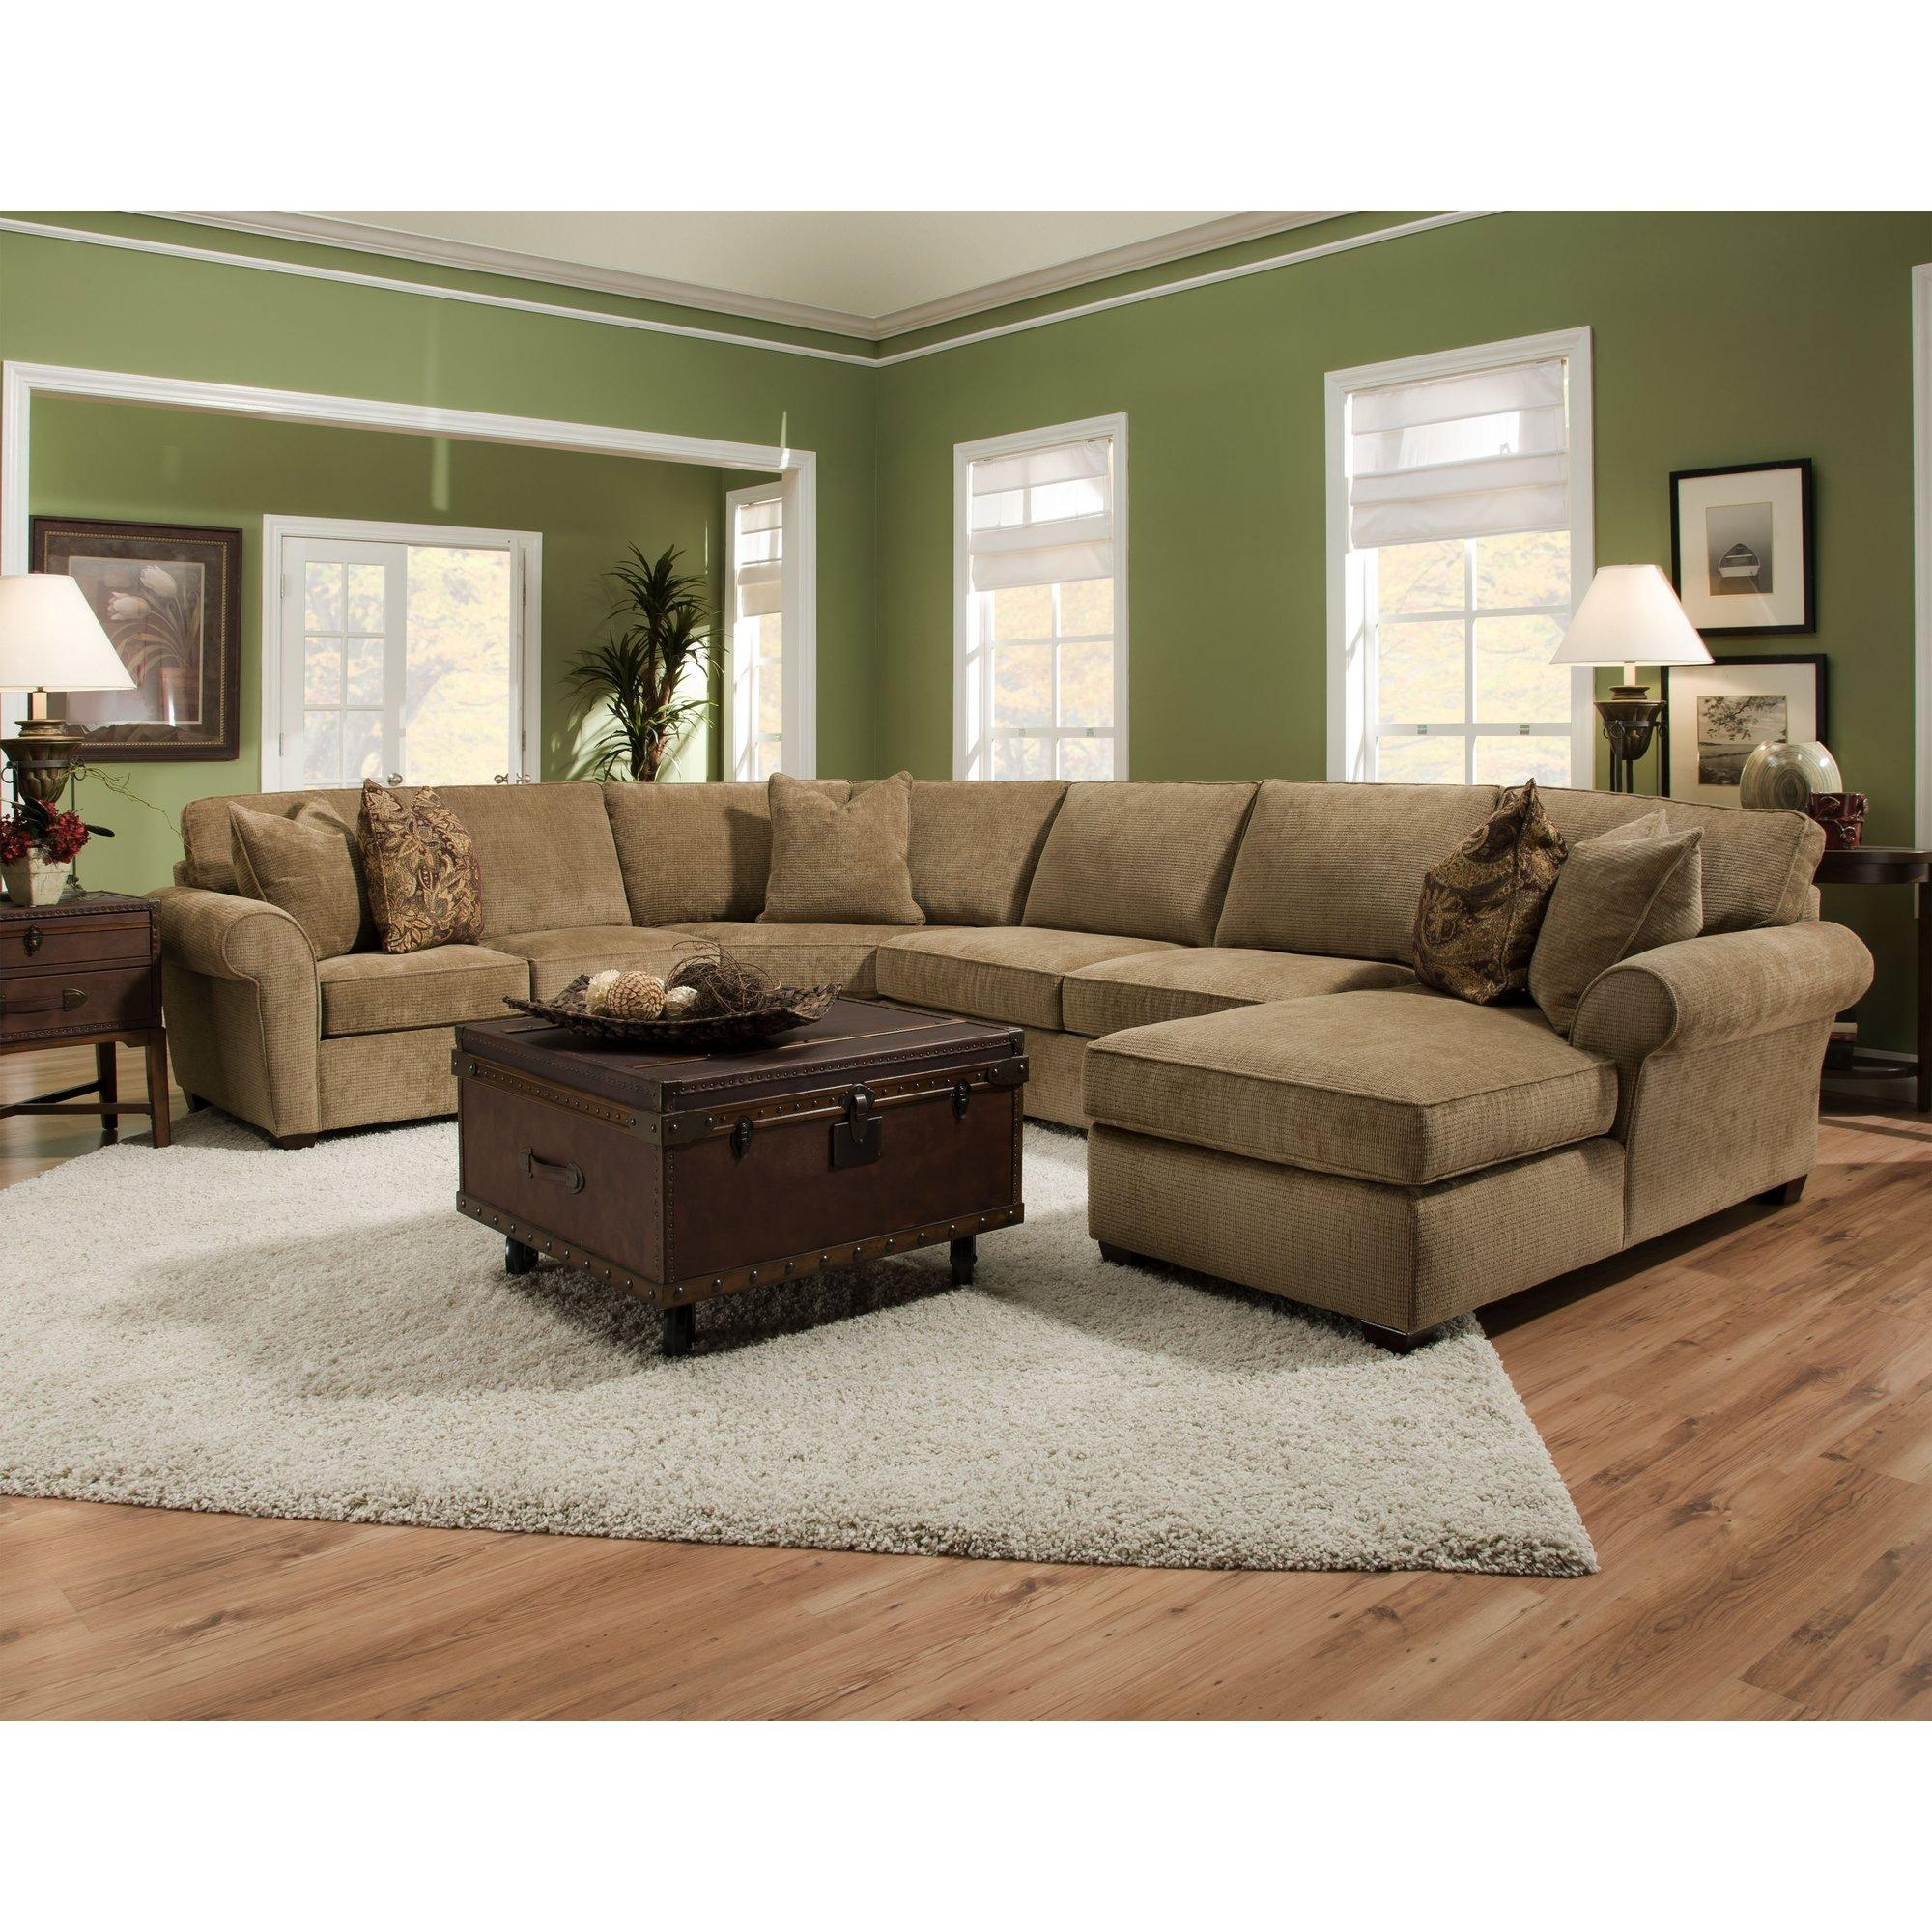 Bauhaus Sofa Reviews Bauhaus Lafayette Sofa Reviews Loopon – Thesofa In Bauhaus Sectional (View 11 of 15)